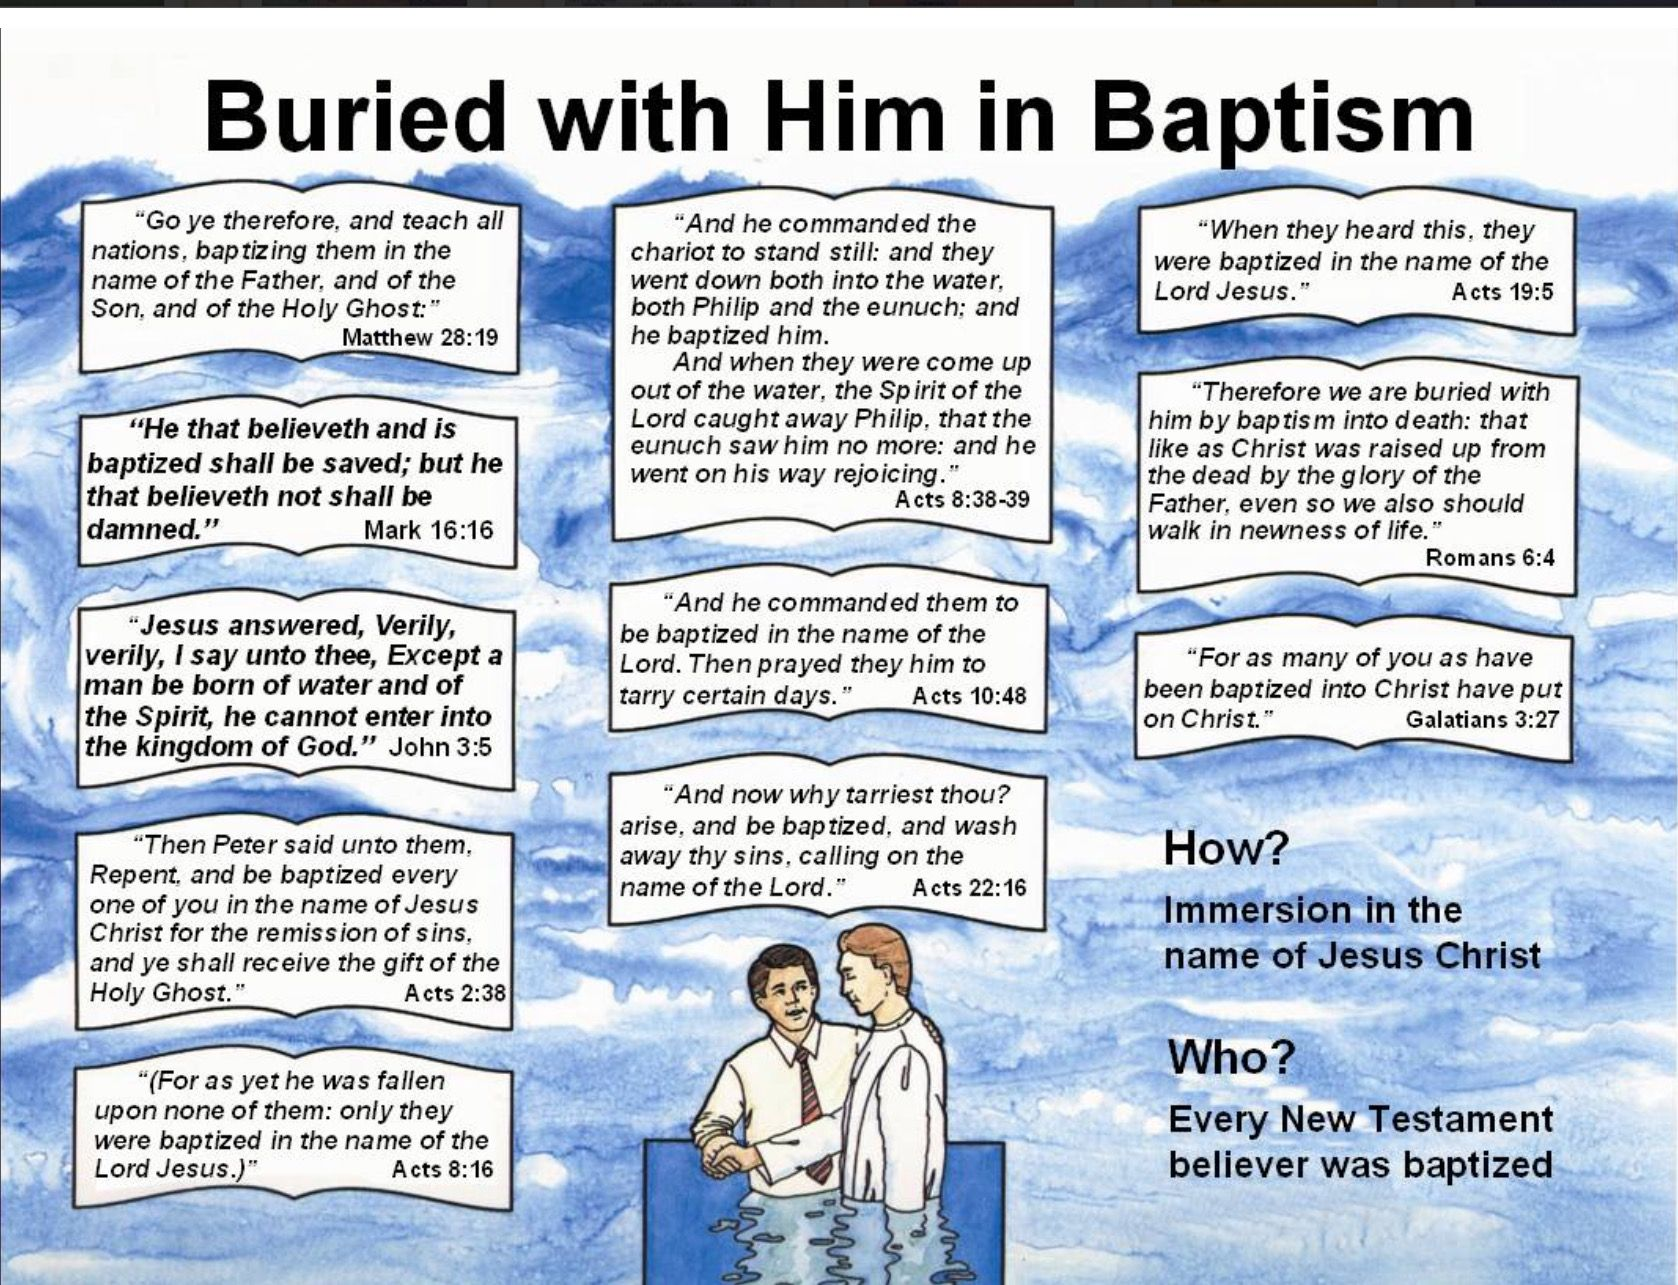 medium resolution of baptism in the name of jesus christ for the remission of since acts 2 38 40